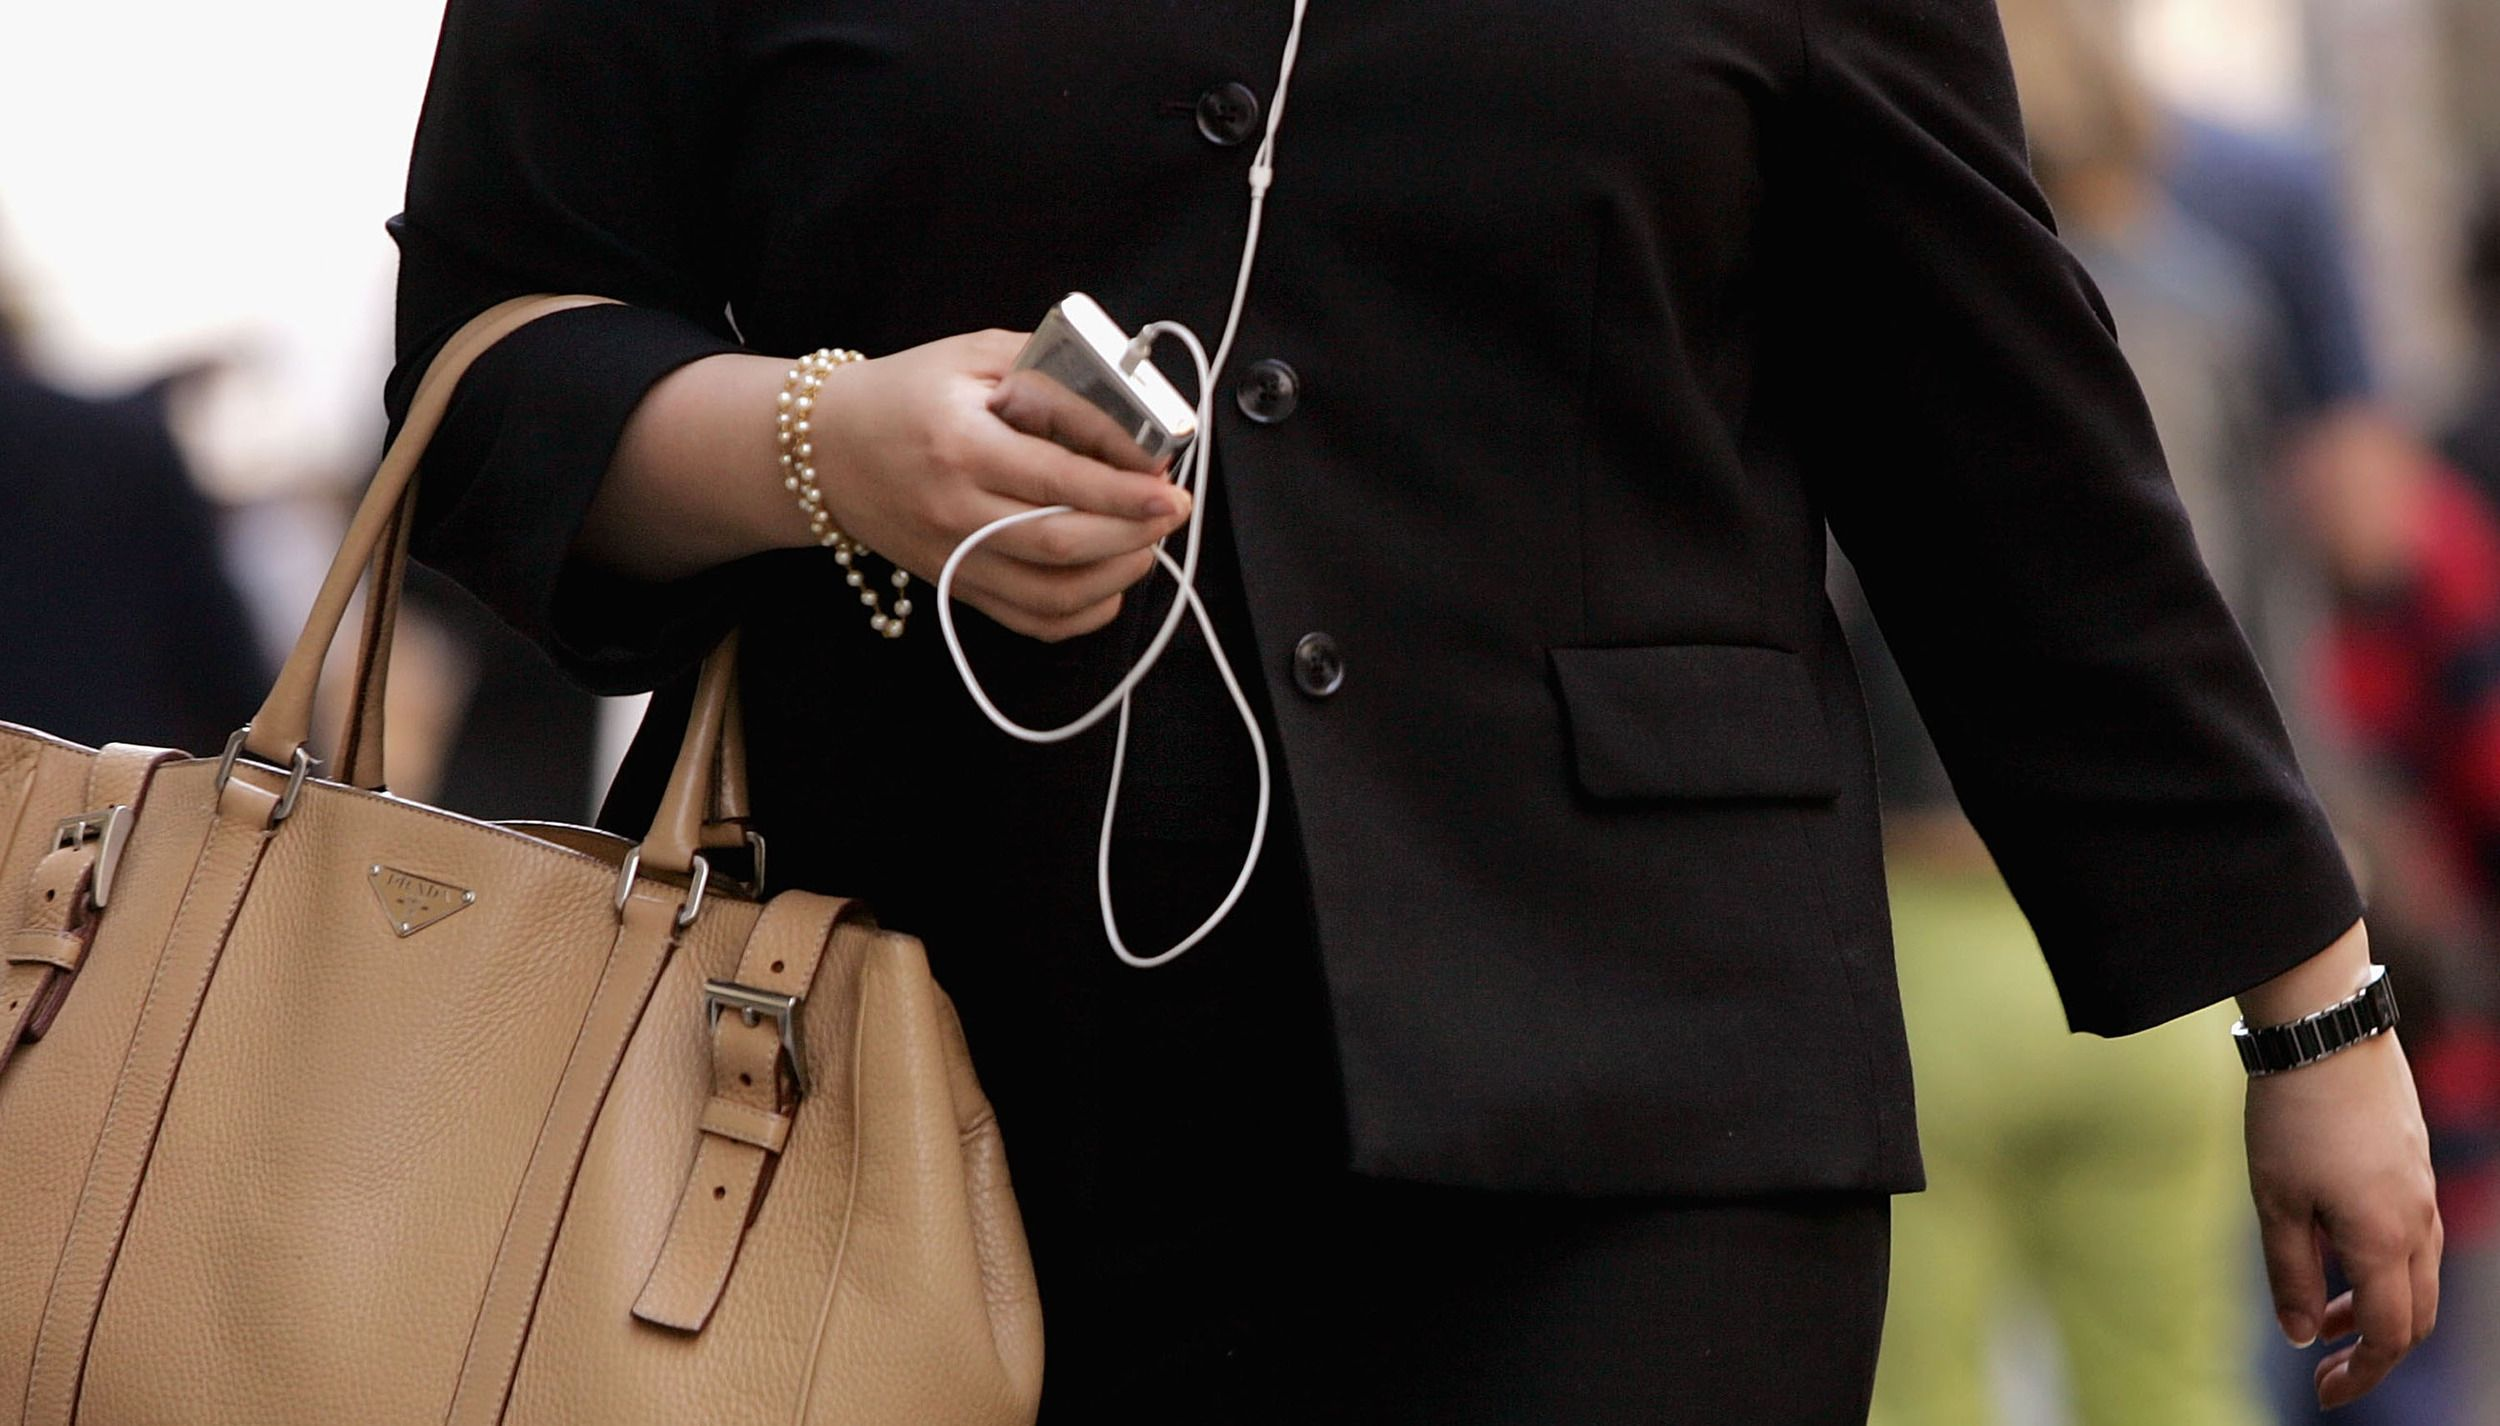 Texting while walking: The dangerous traffic trend for teens